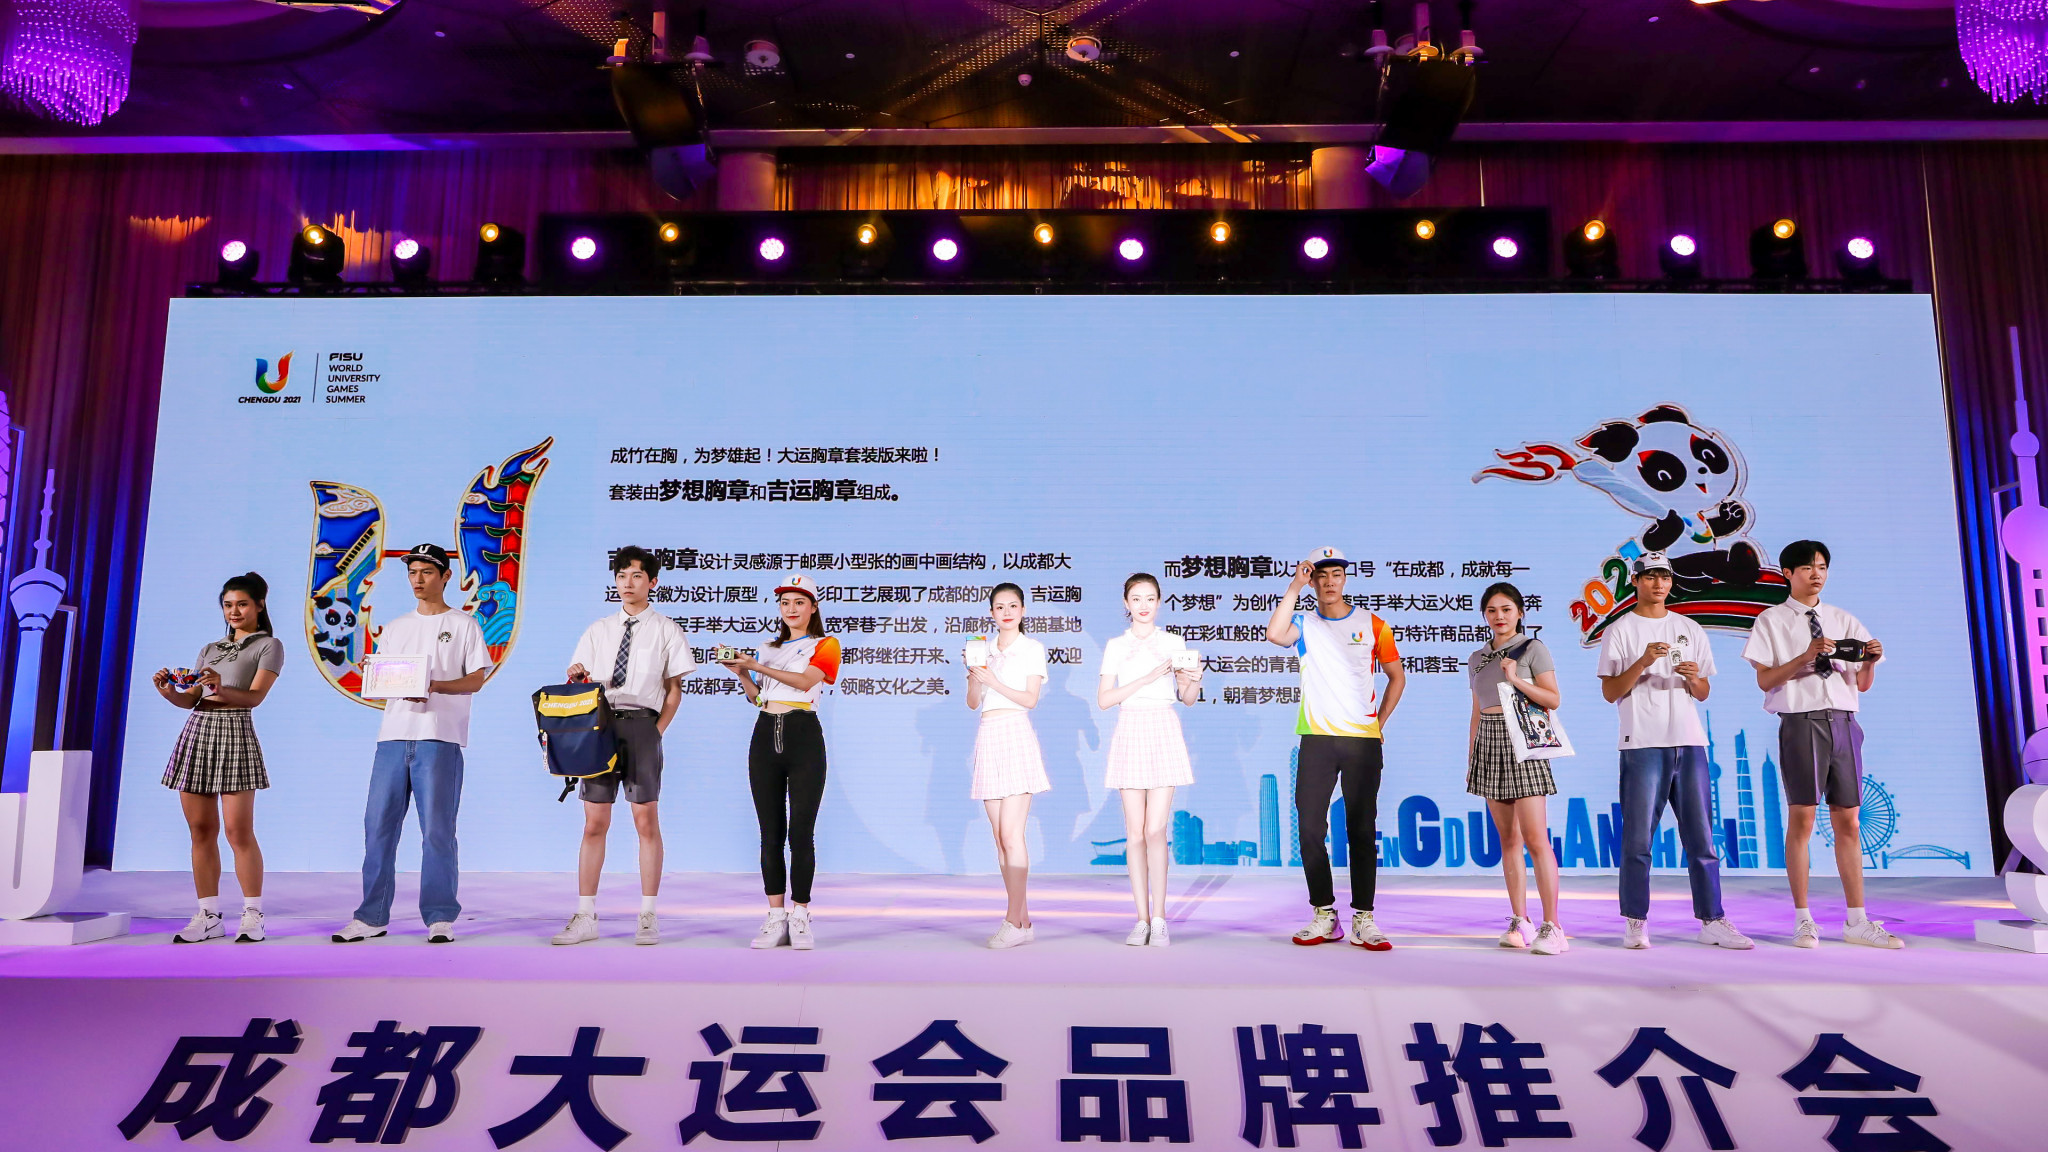 A series of Rongbao products were shown during the conference ©Chengdu 2021